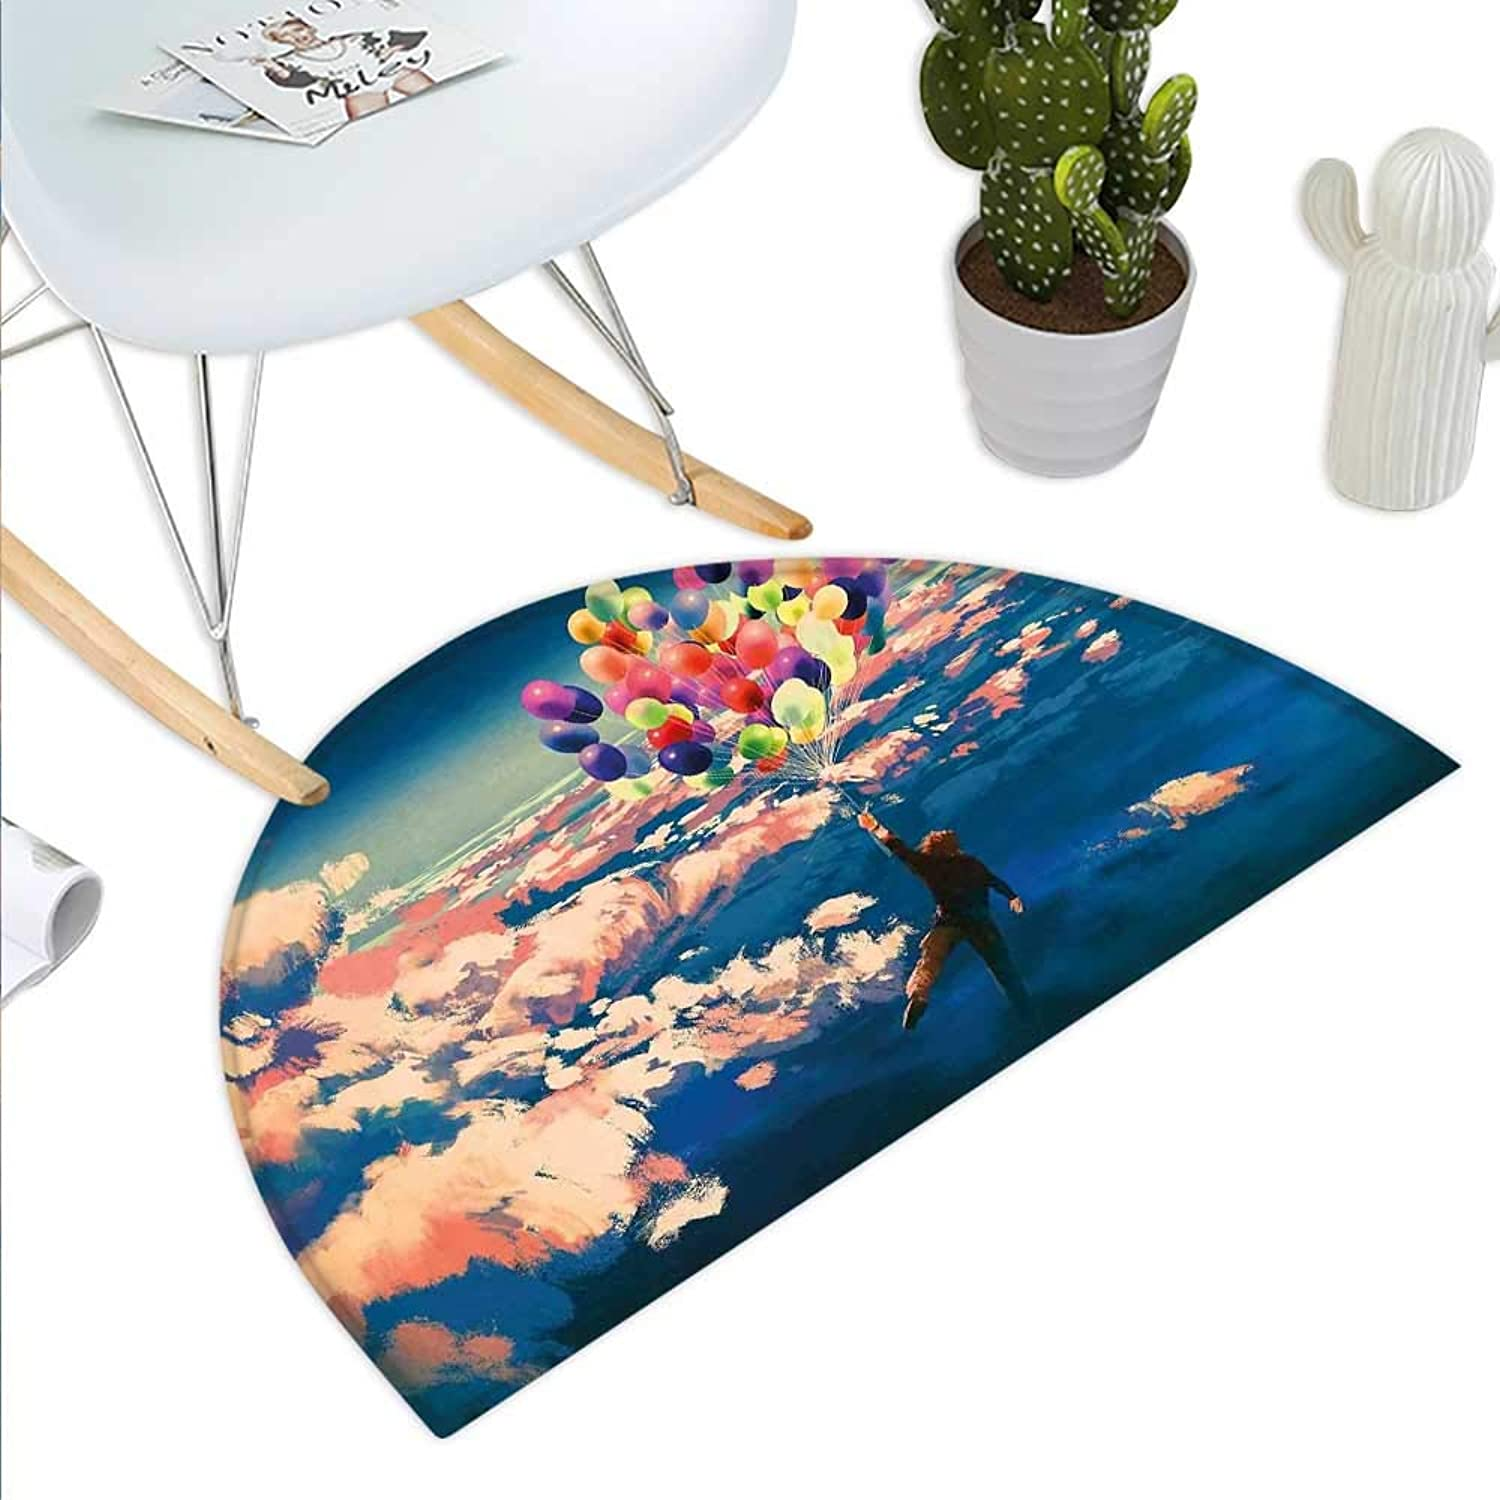 Adventure Semicircle Doormat Man Flying with colorful Balloons in The Sky on Clouds Miracle Paint Print Halfmoon doormats H 35.4  xD 53.1  Coral and bluee